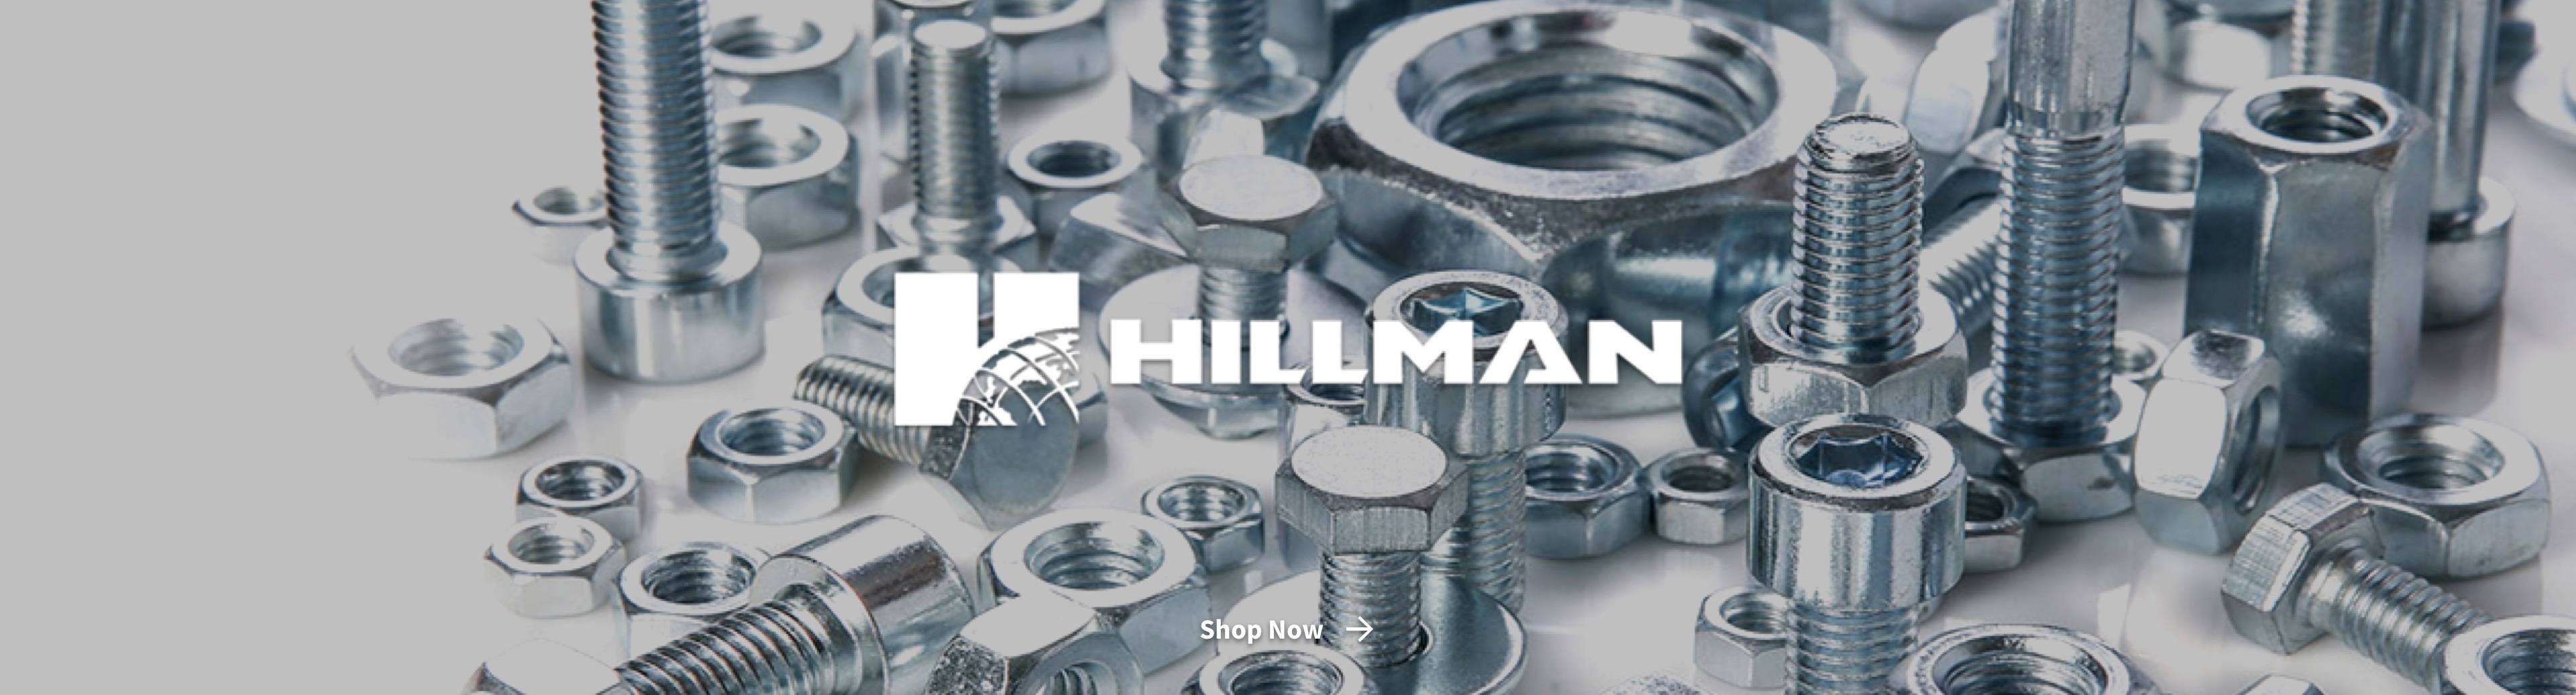 Hillman fasteners with logo